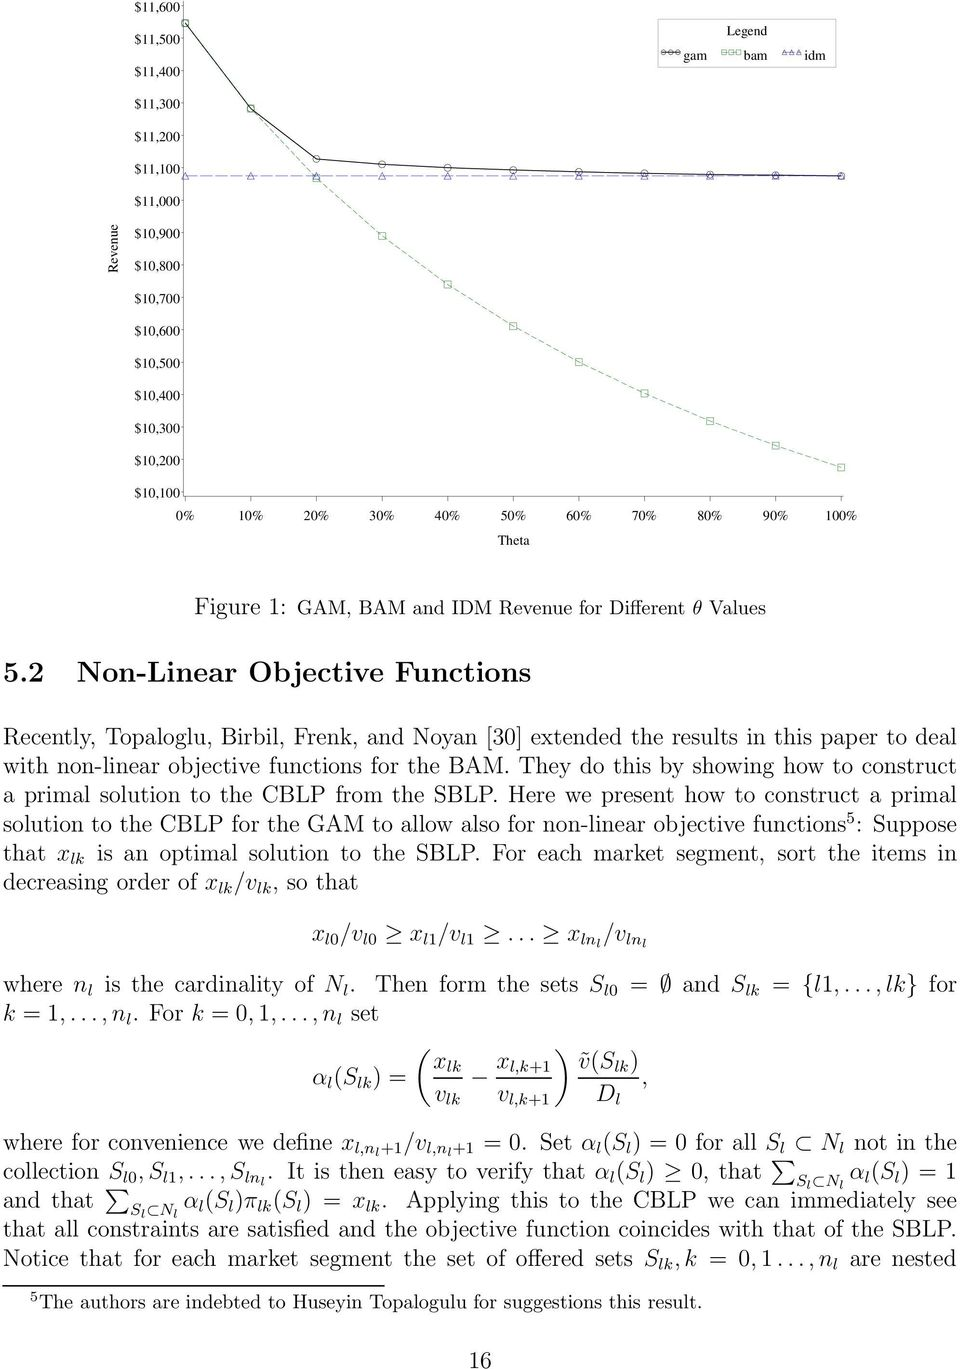 2 Non-Linear Objective Functions Recently, Topaloglu, Birbil, Frenk, and Noyan [30] extended the results in this paper to deal with non-linear objective functions for the BAM.